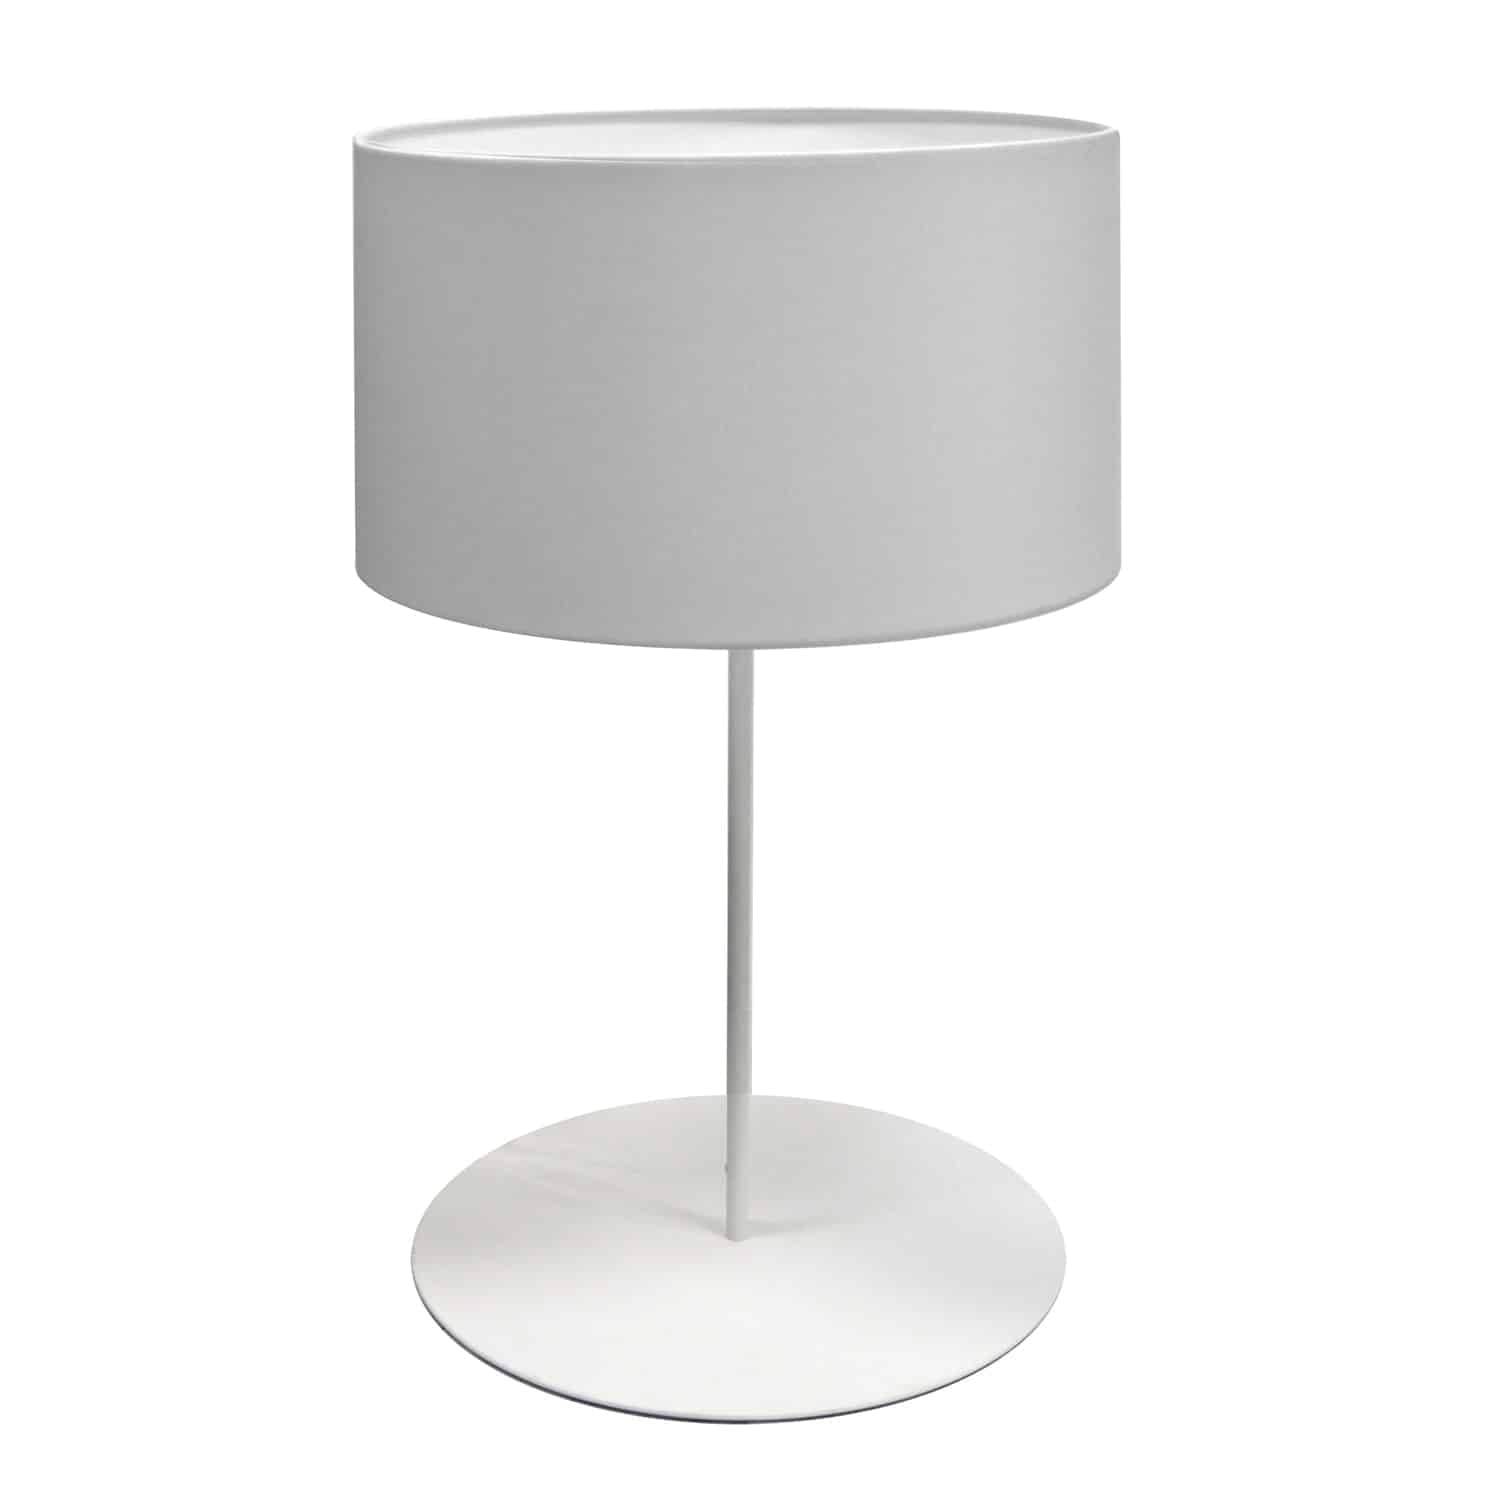 1 Light Drum Table Lamp with JTone White Shade